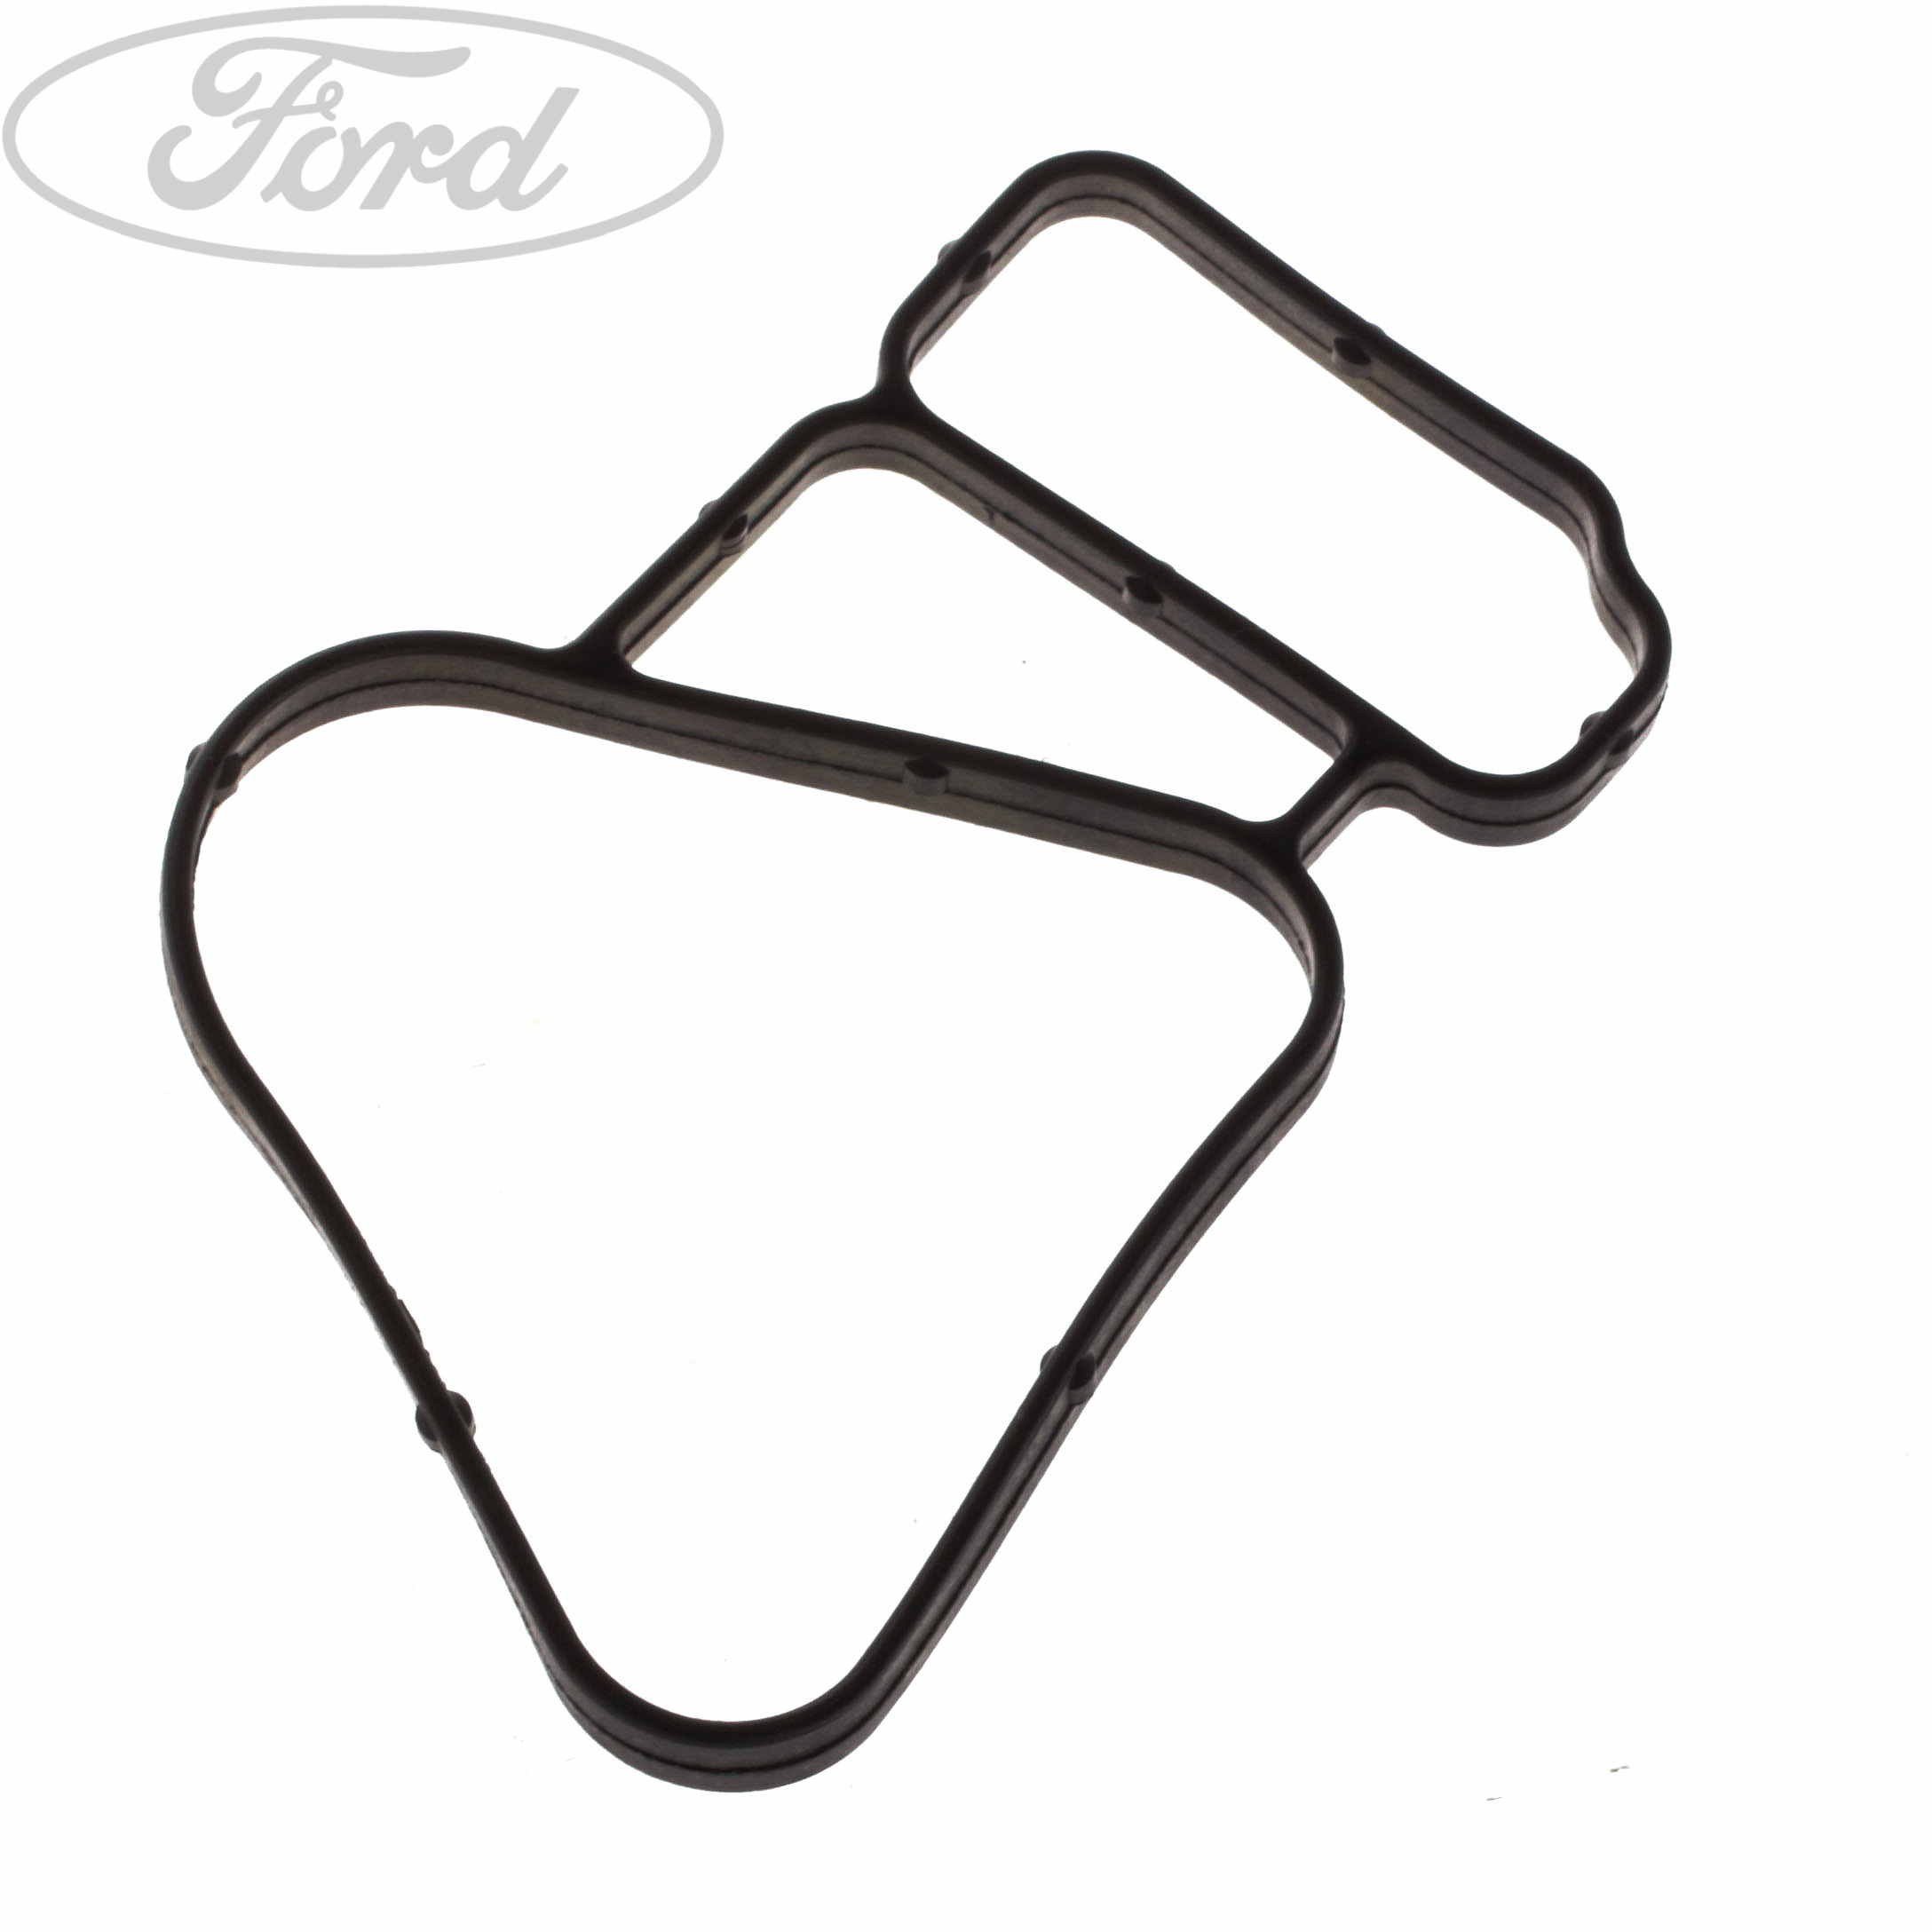 Genuine Ford Thermostat Housing Gasket